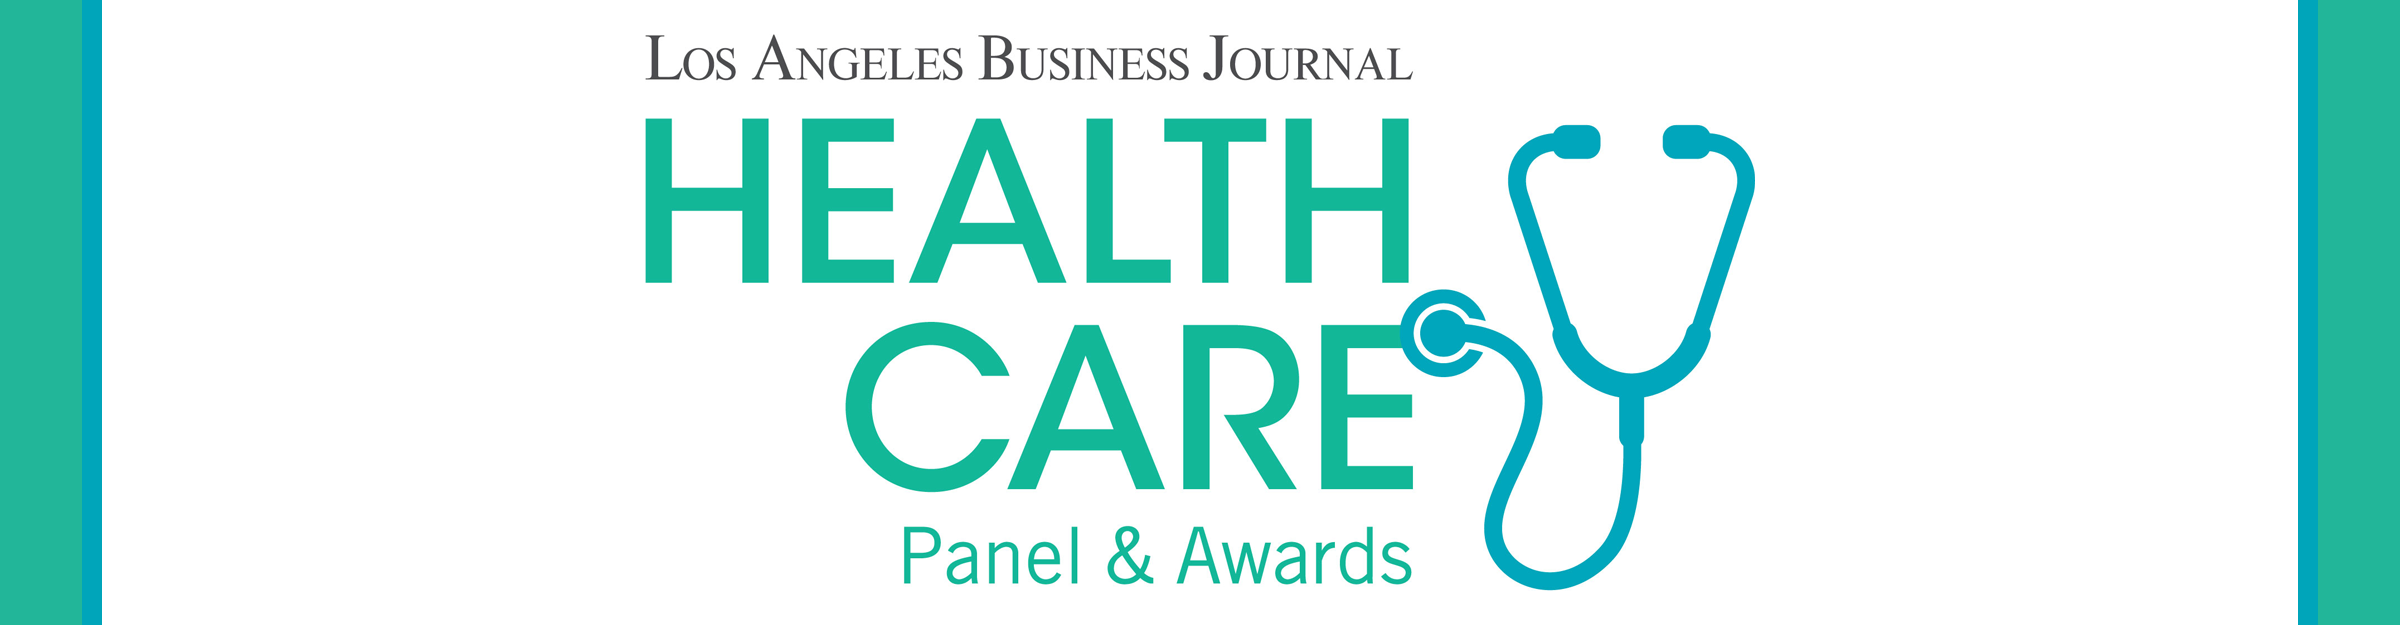 Health Care Panel Awards Los Angeles Business Journal